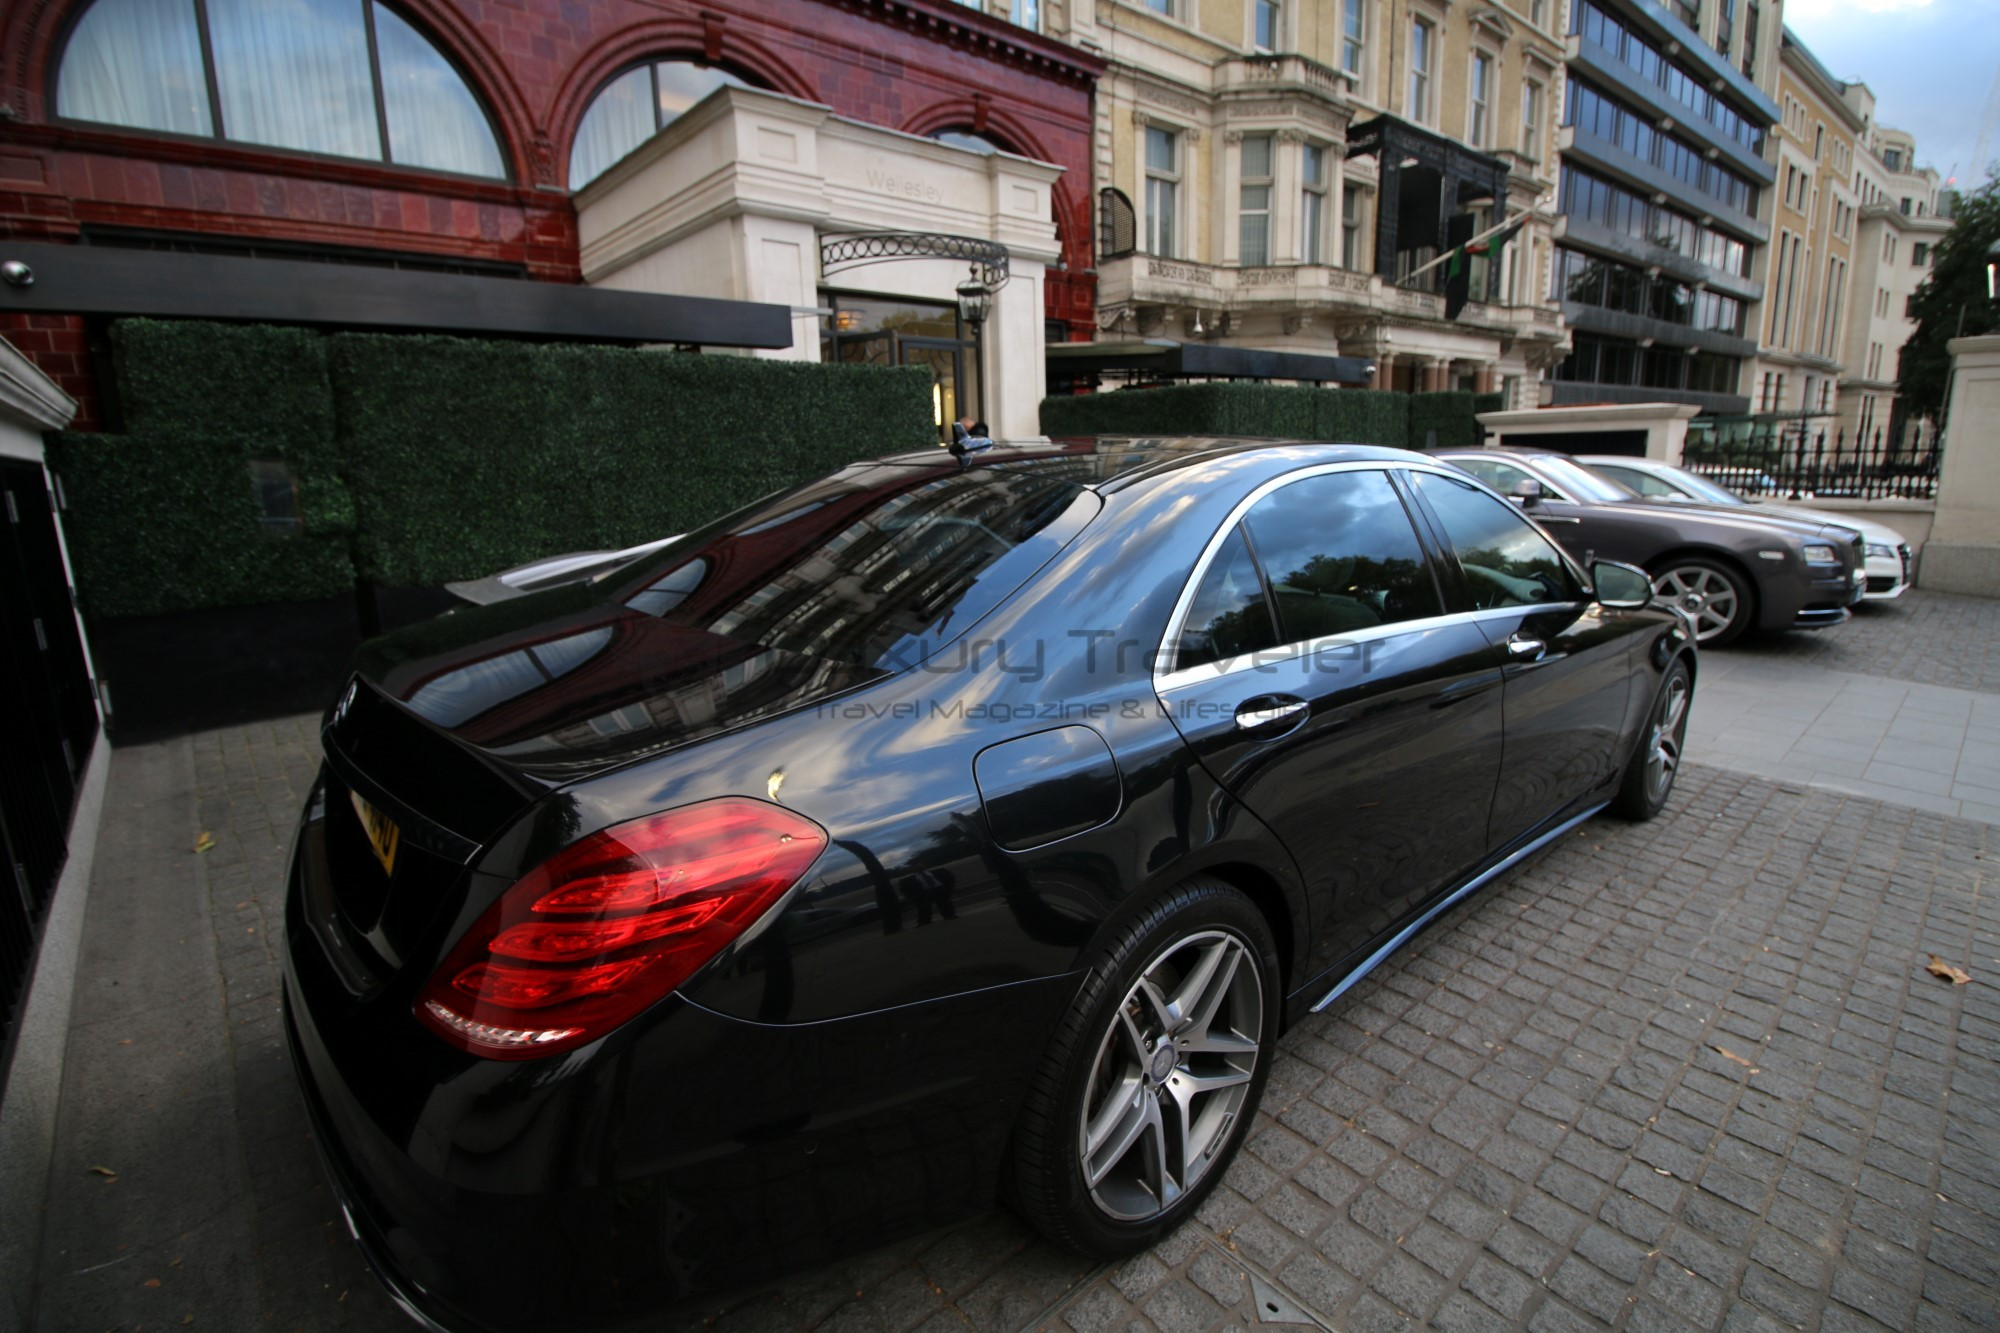 38-egchauffeurs_luxury_transfers_london